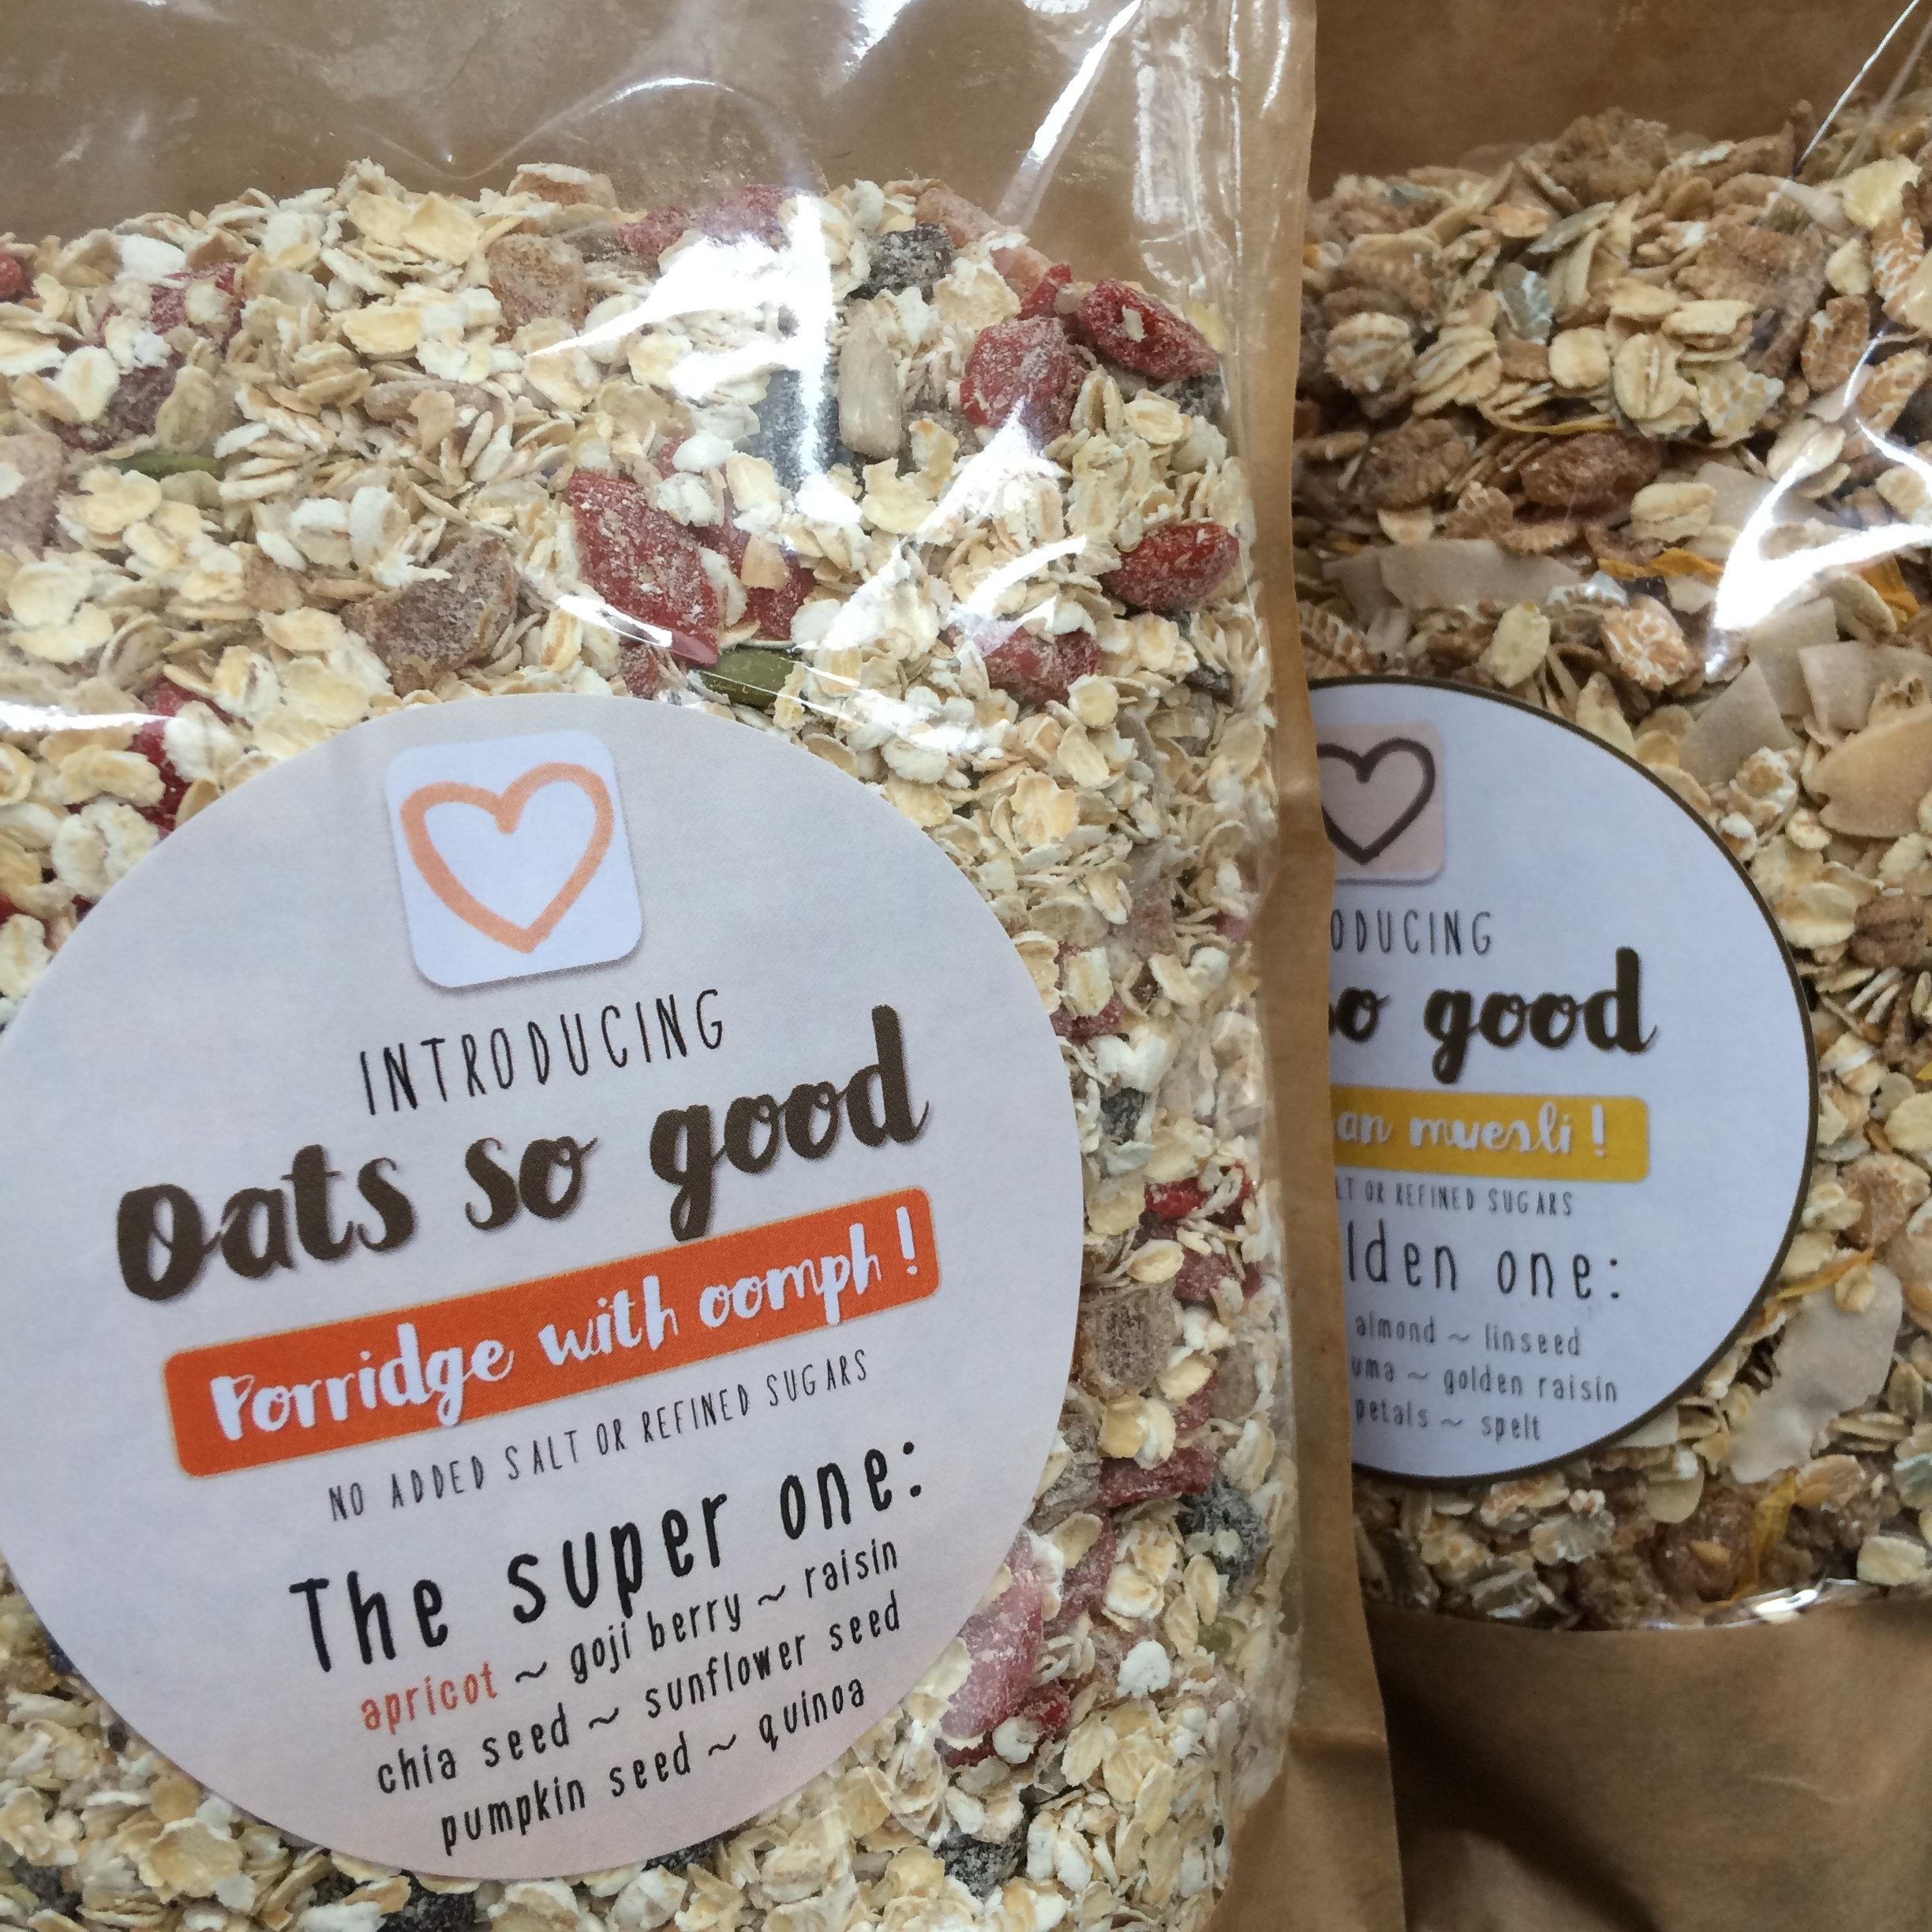 Oats so good - Paperdolls blog